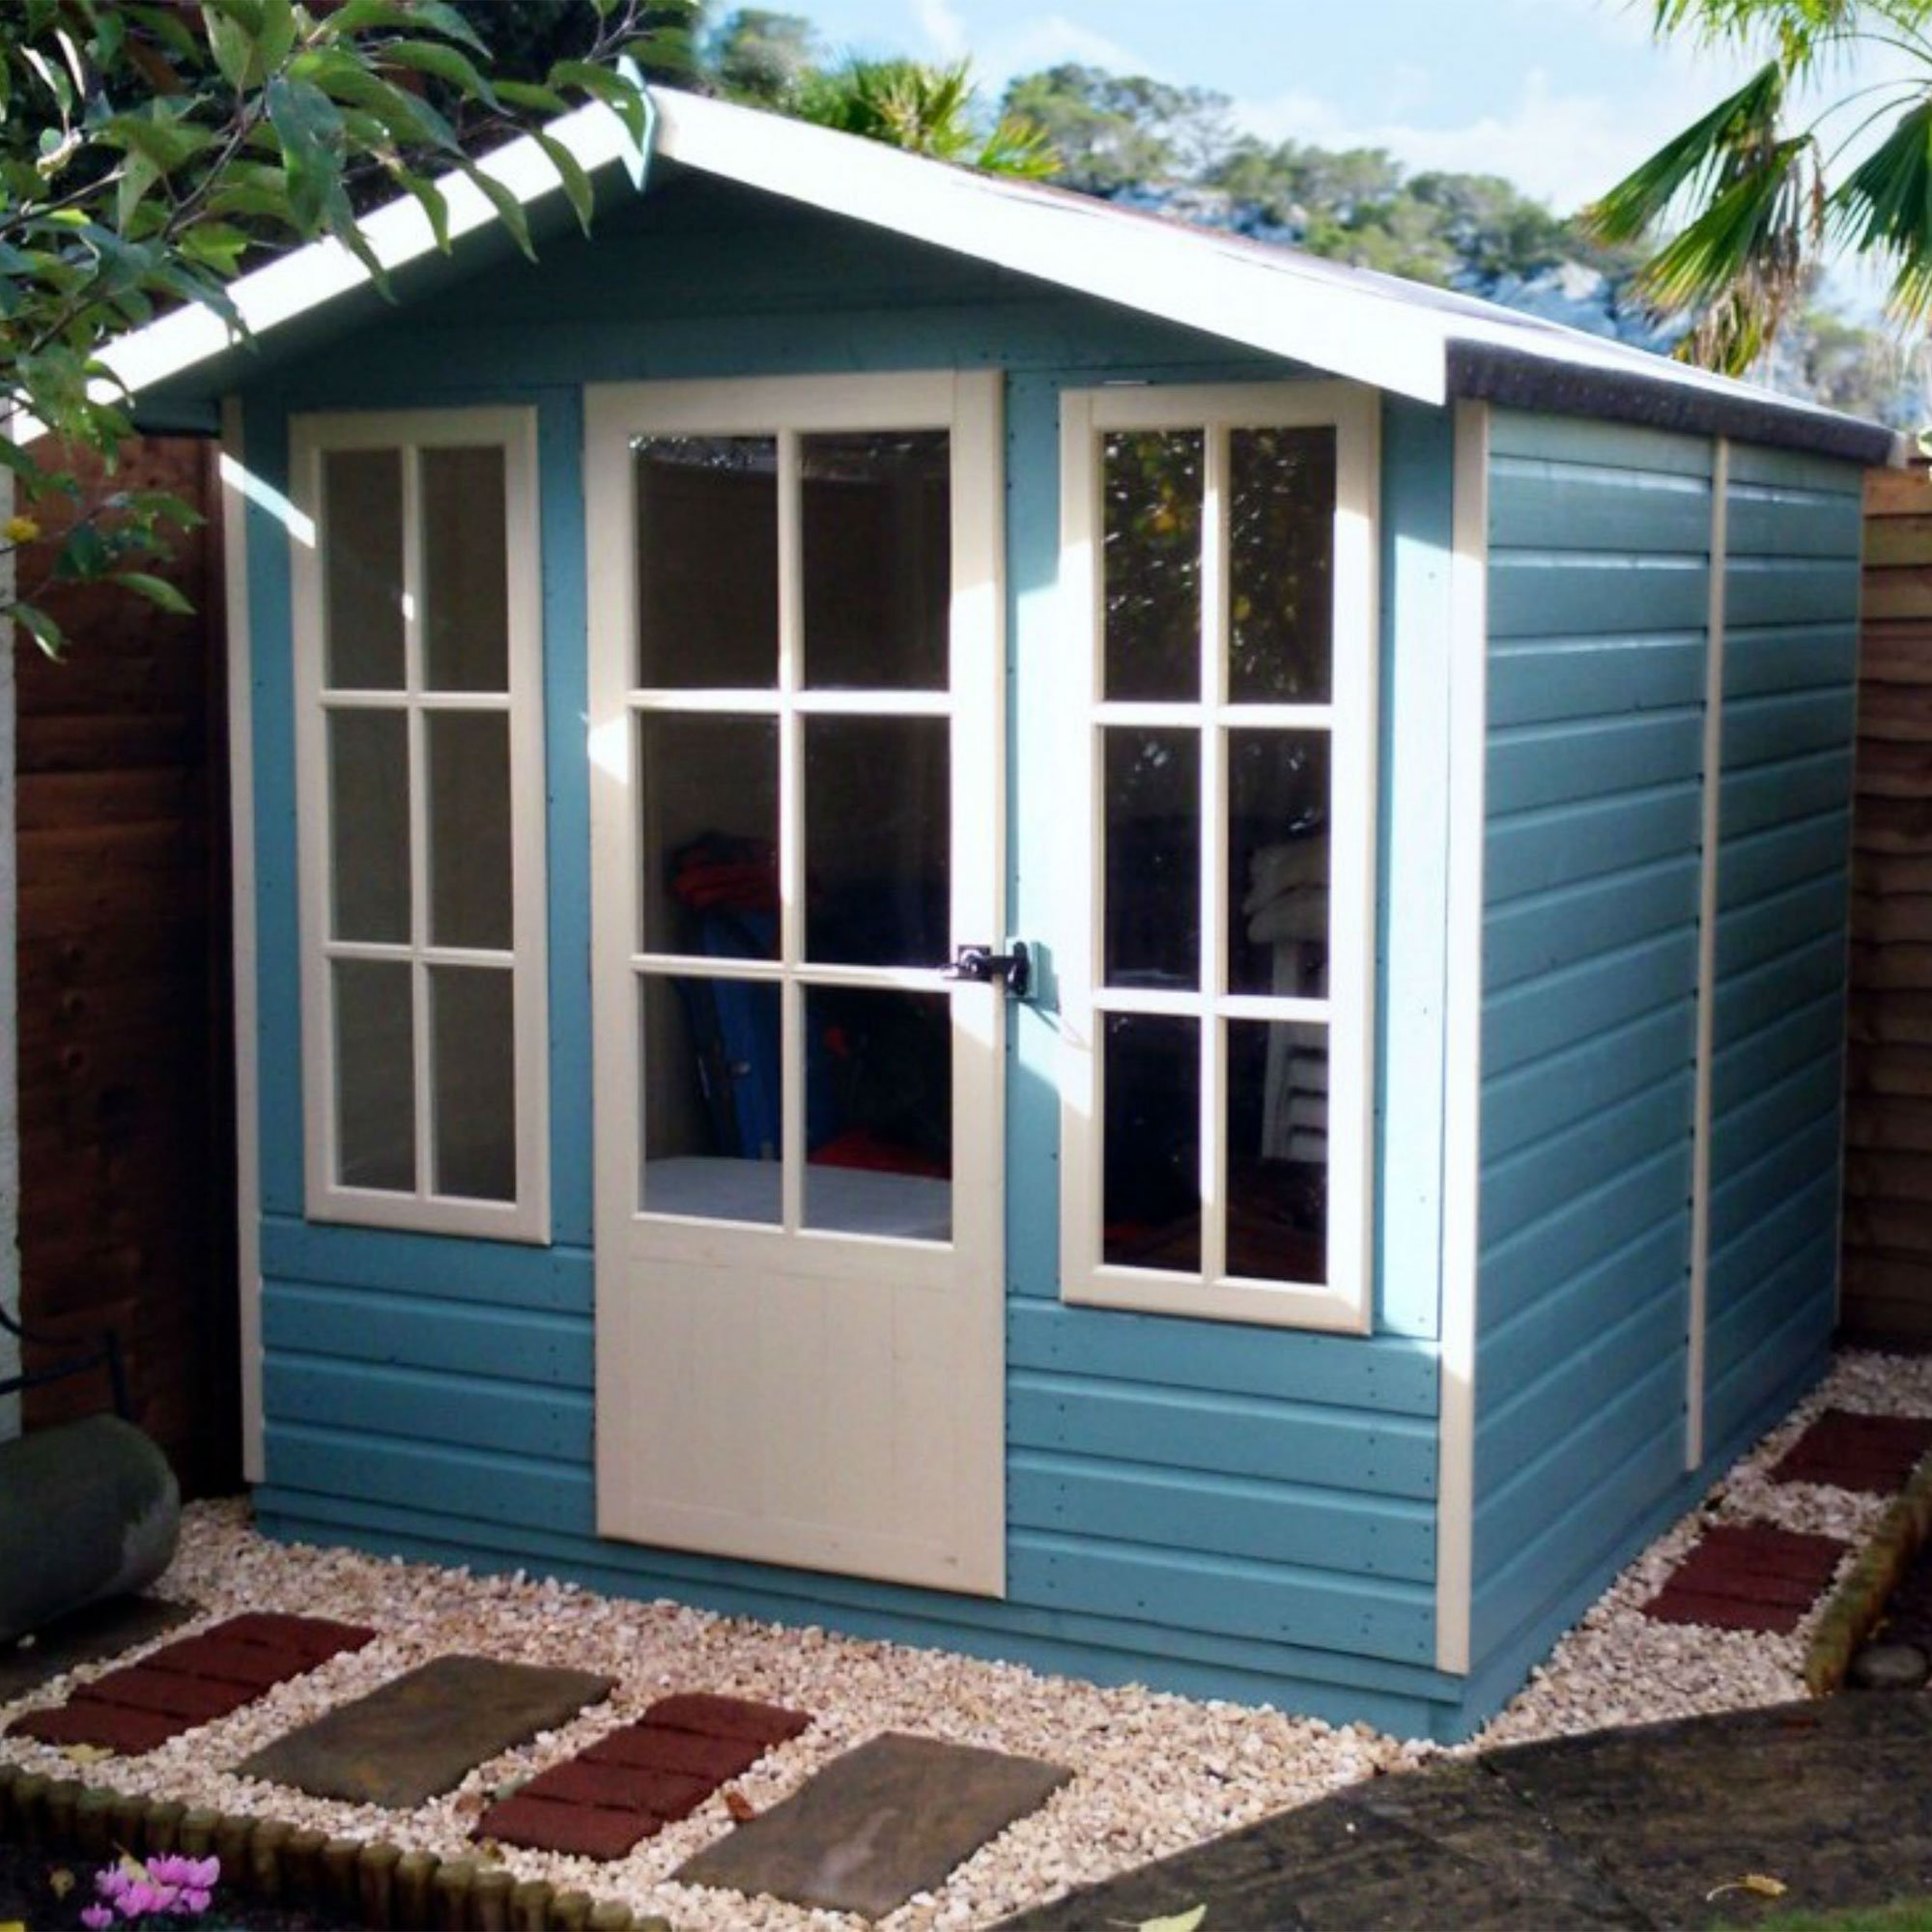 7'1x7'11 Shire Chatsworth Traditional Wooden Summer House